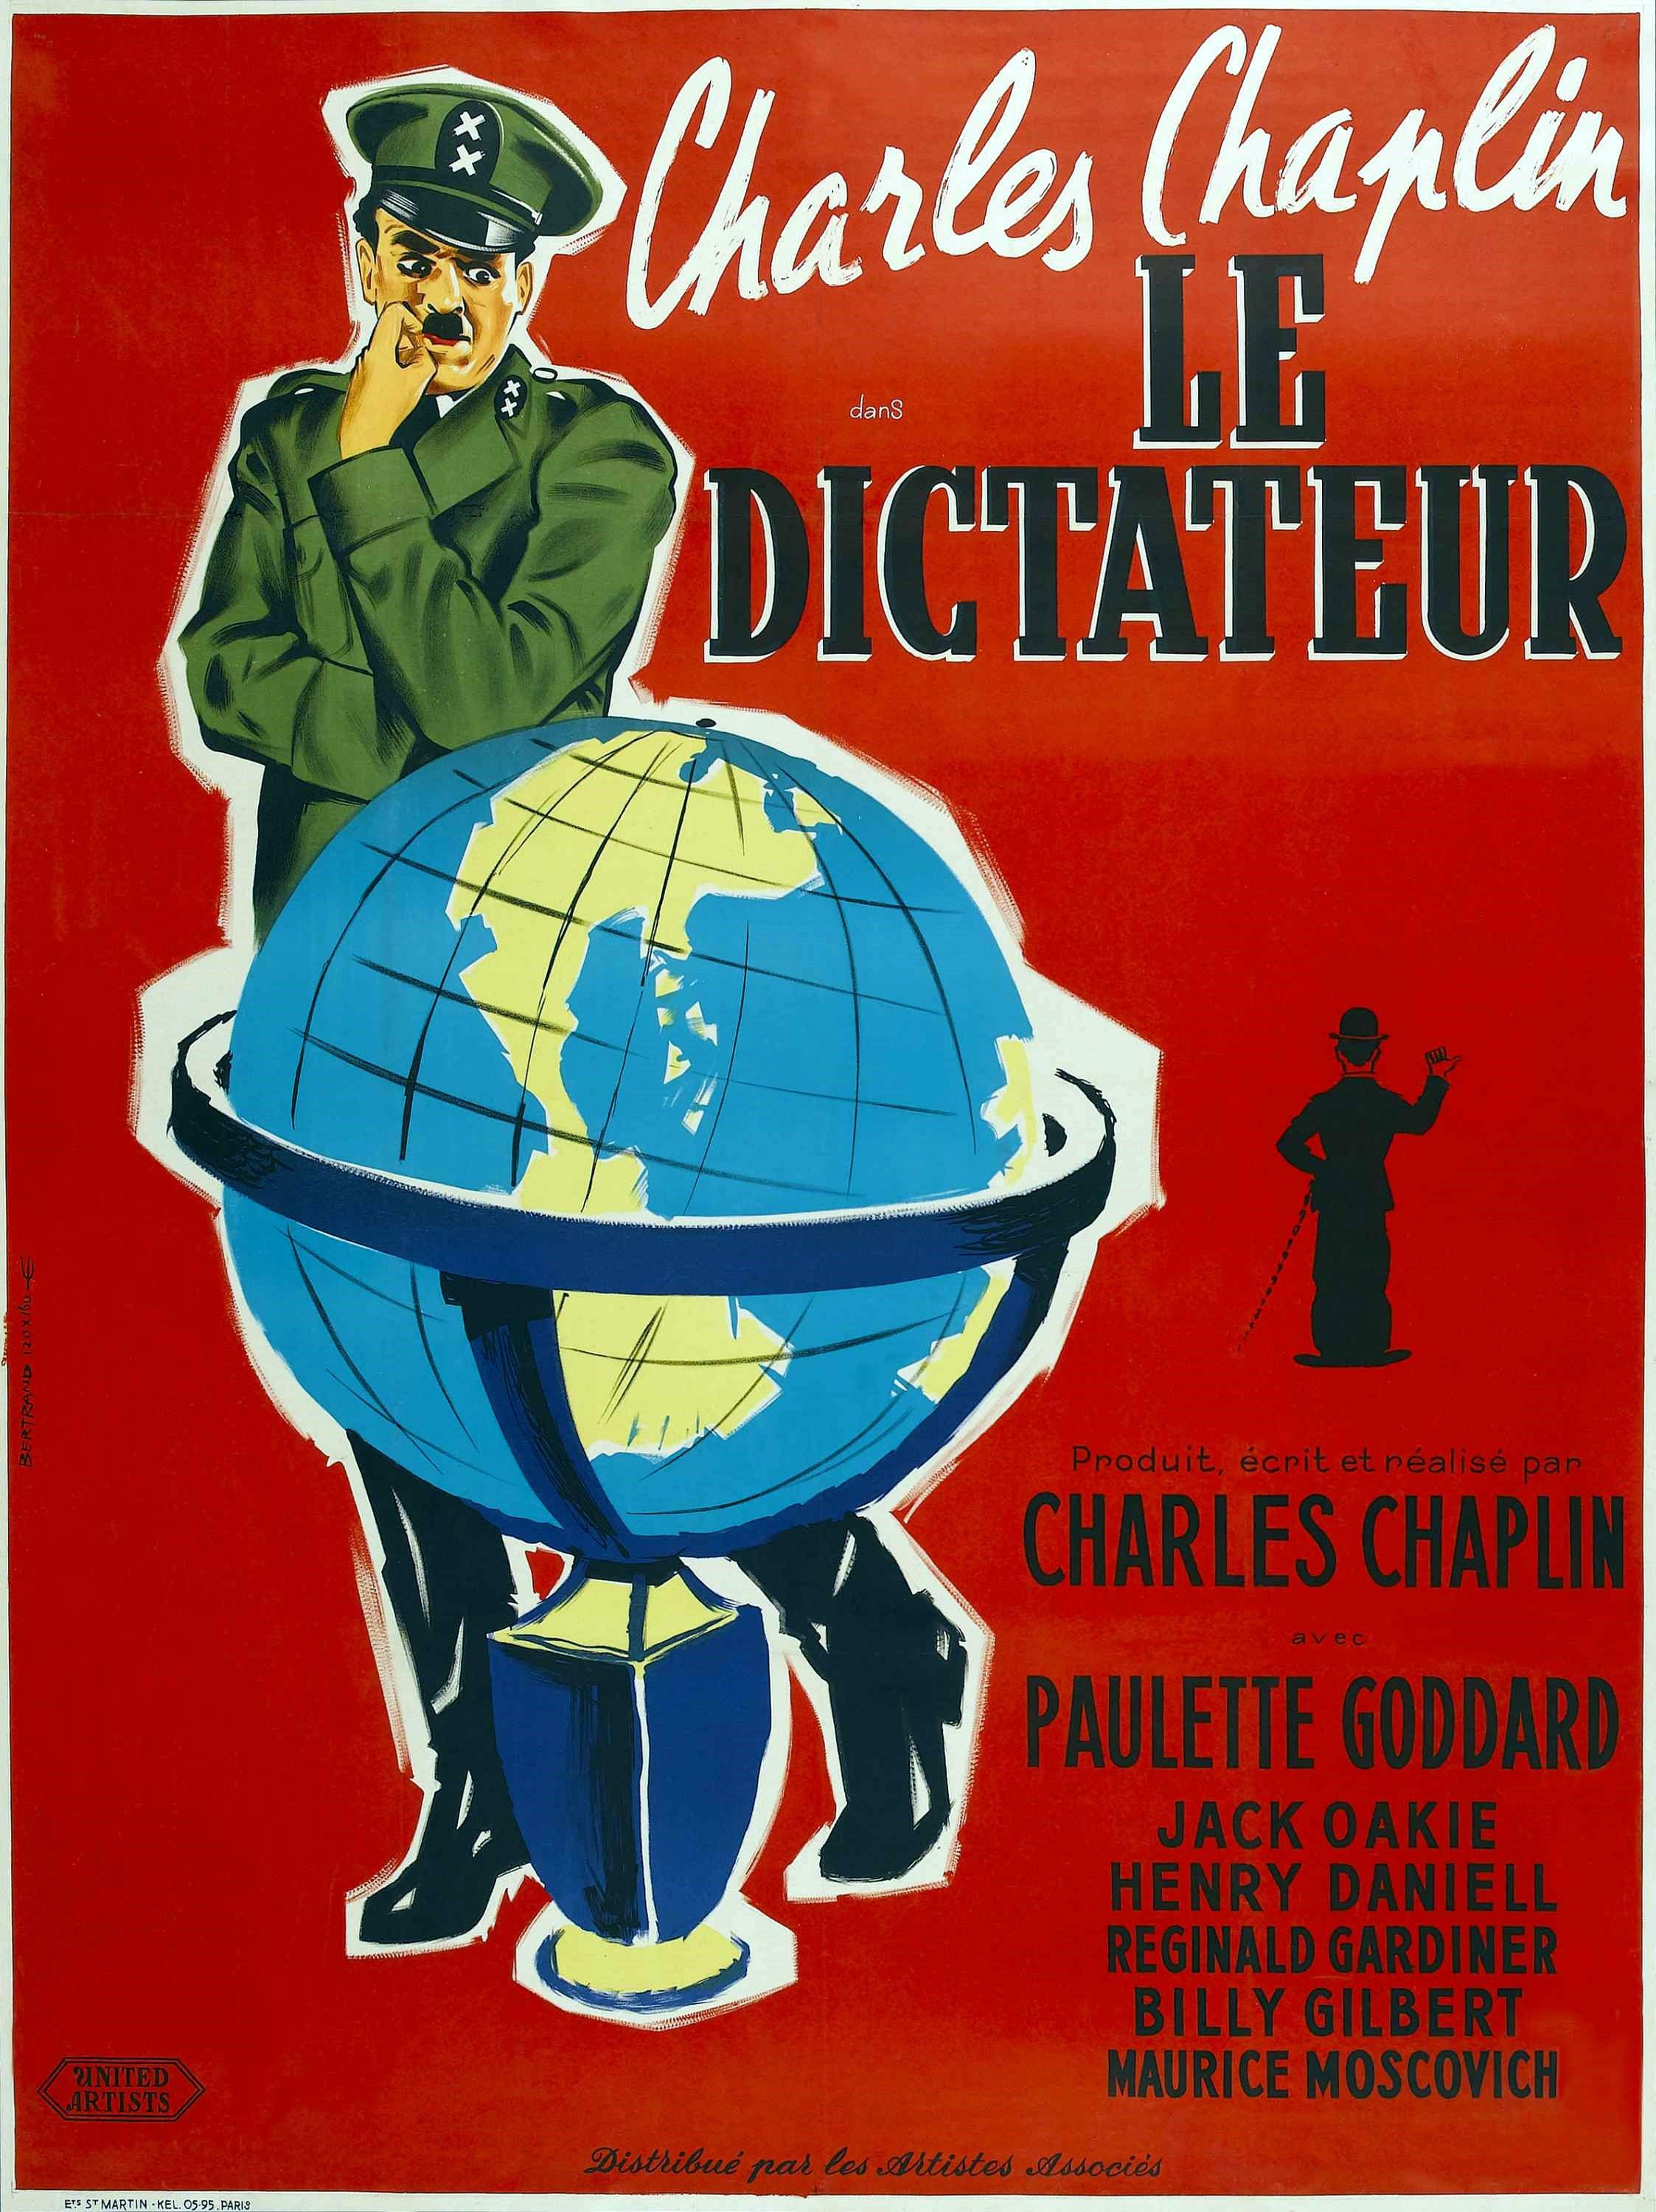 The Great Dictator (1940) Charlie chaplin, Classic movie